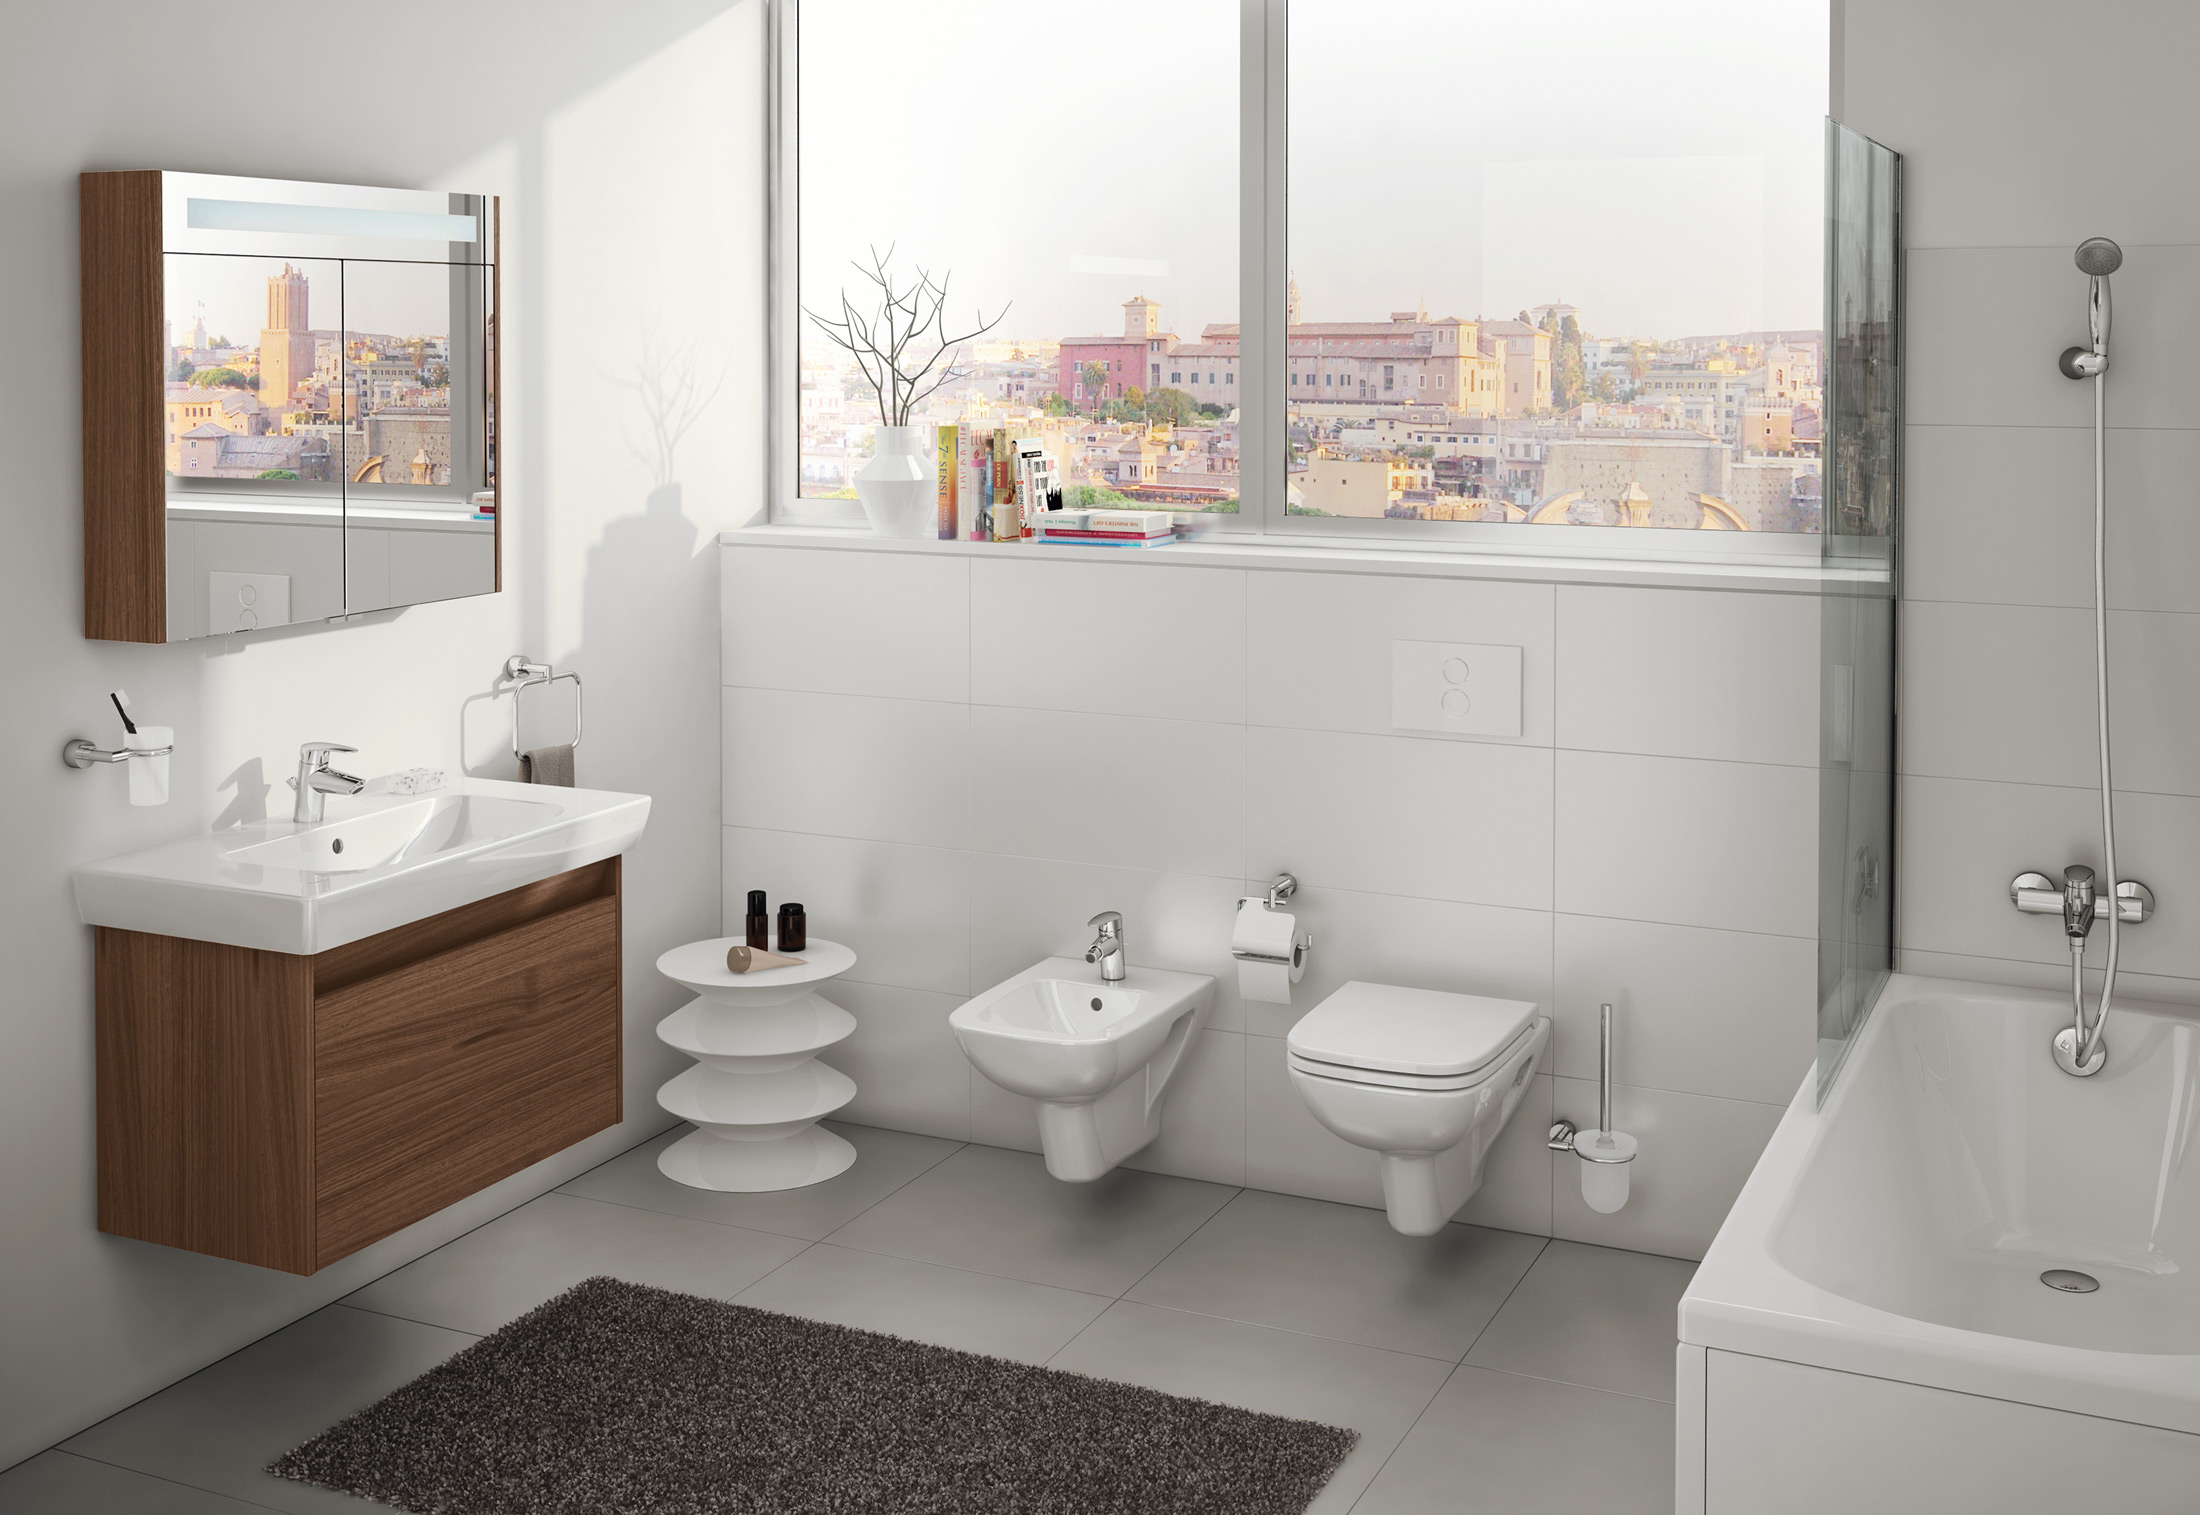 S20 mirror cabinet by VitrA Bathroom | STYLEPARK